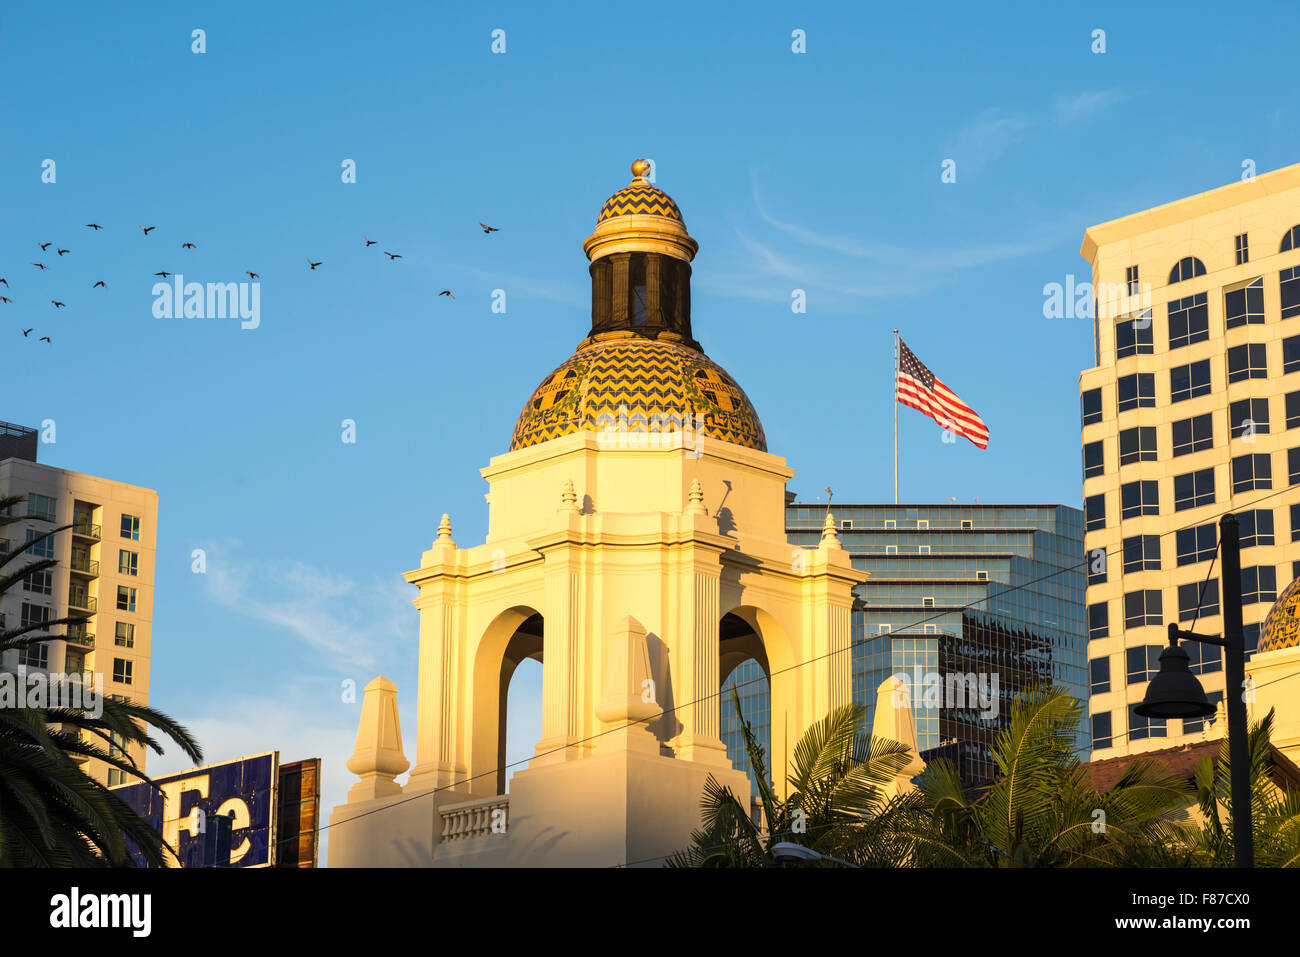 cupola, dome, American Flag, buildings.  Union Station, San Diego, California, USA. Stock Photo